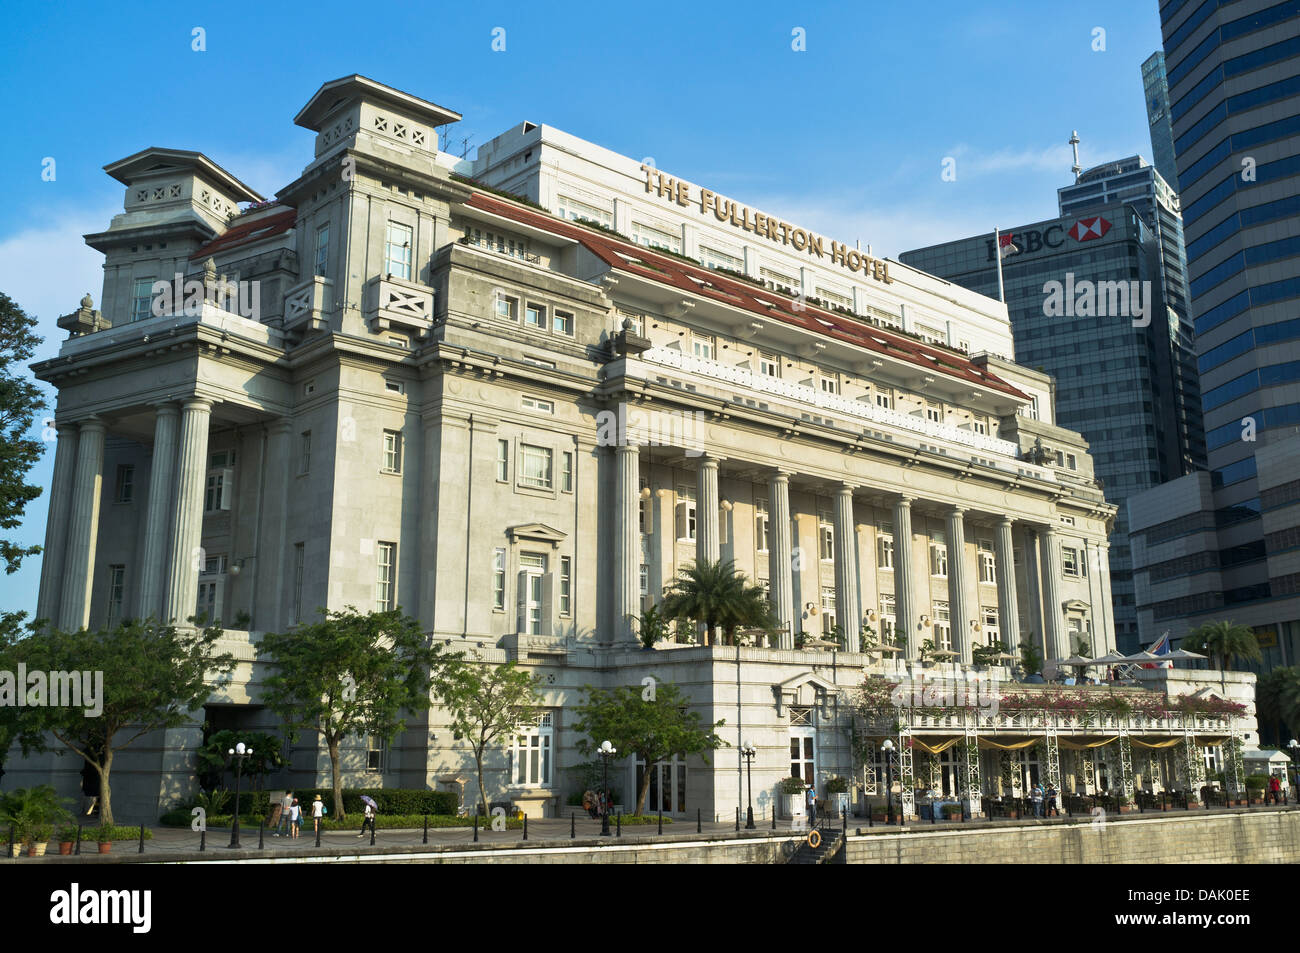 Dh fullerton building downtown core singapore the fullerton hotel building hotels stock photo